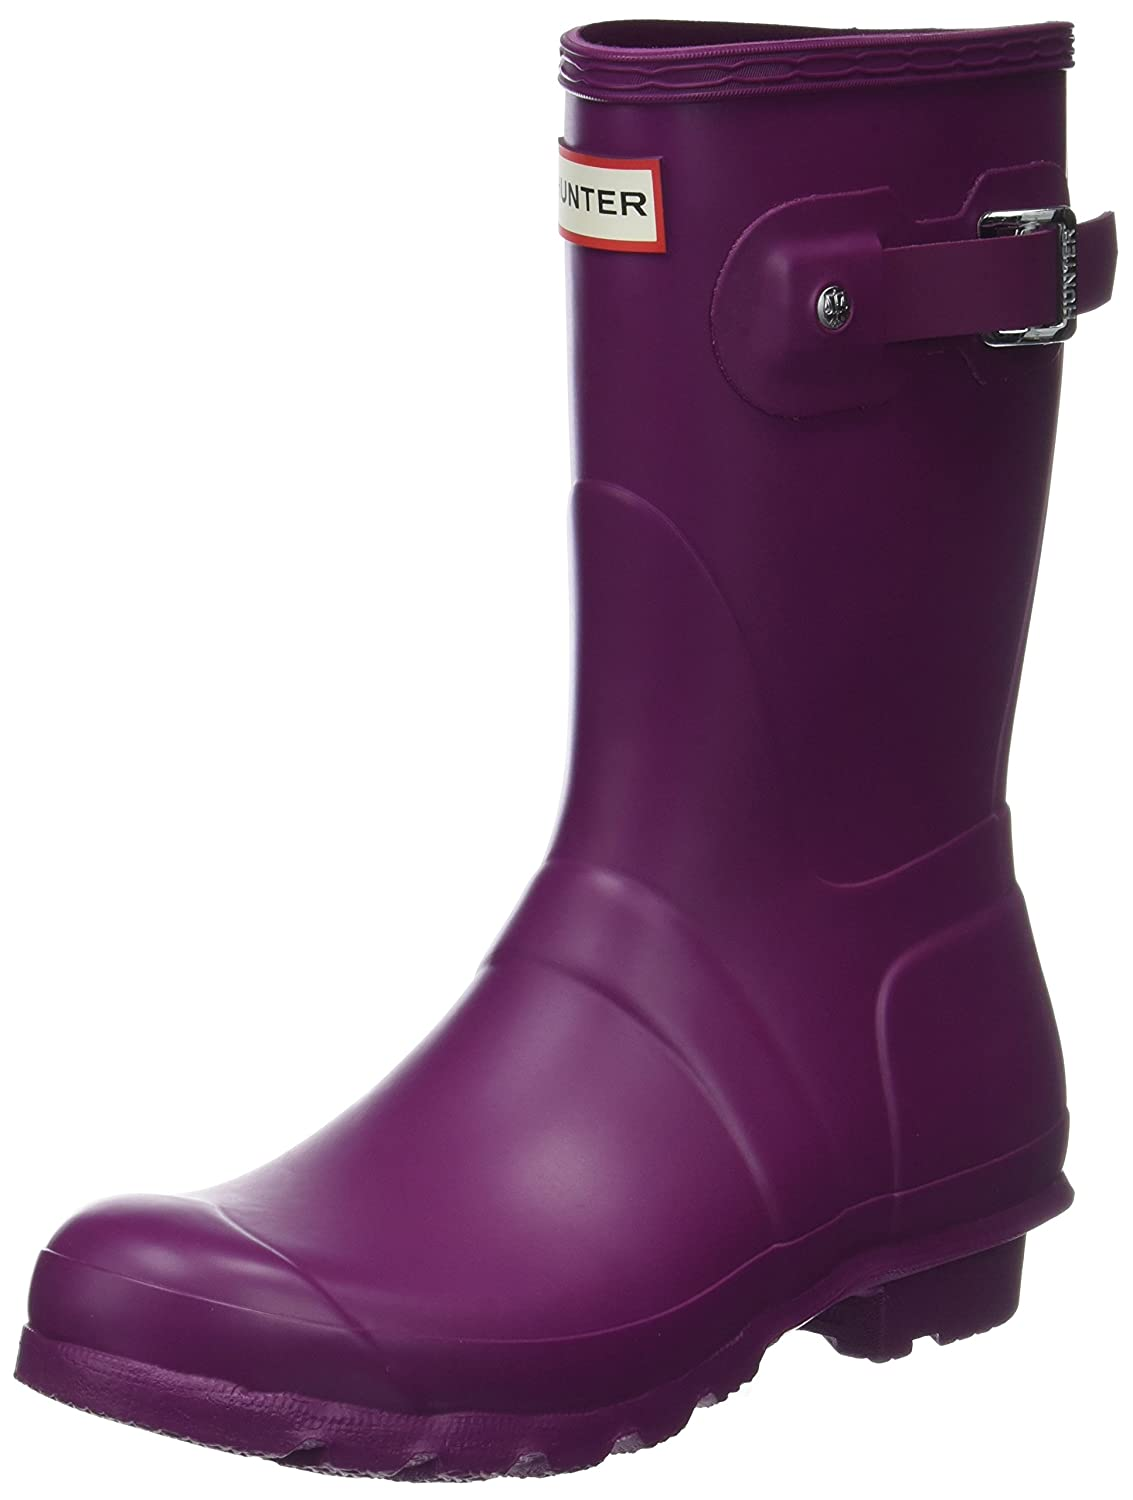 Hunter Women'S Original Short Mid-Calf Rubber Rain Boot36 EU|Morado (Violet Rvi)